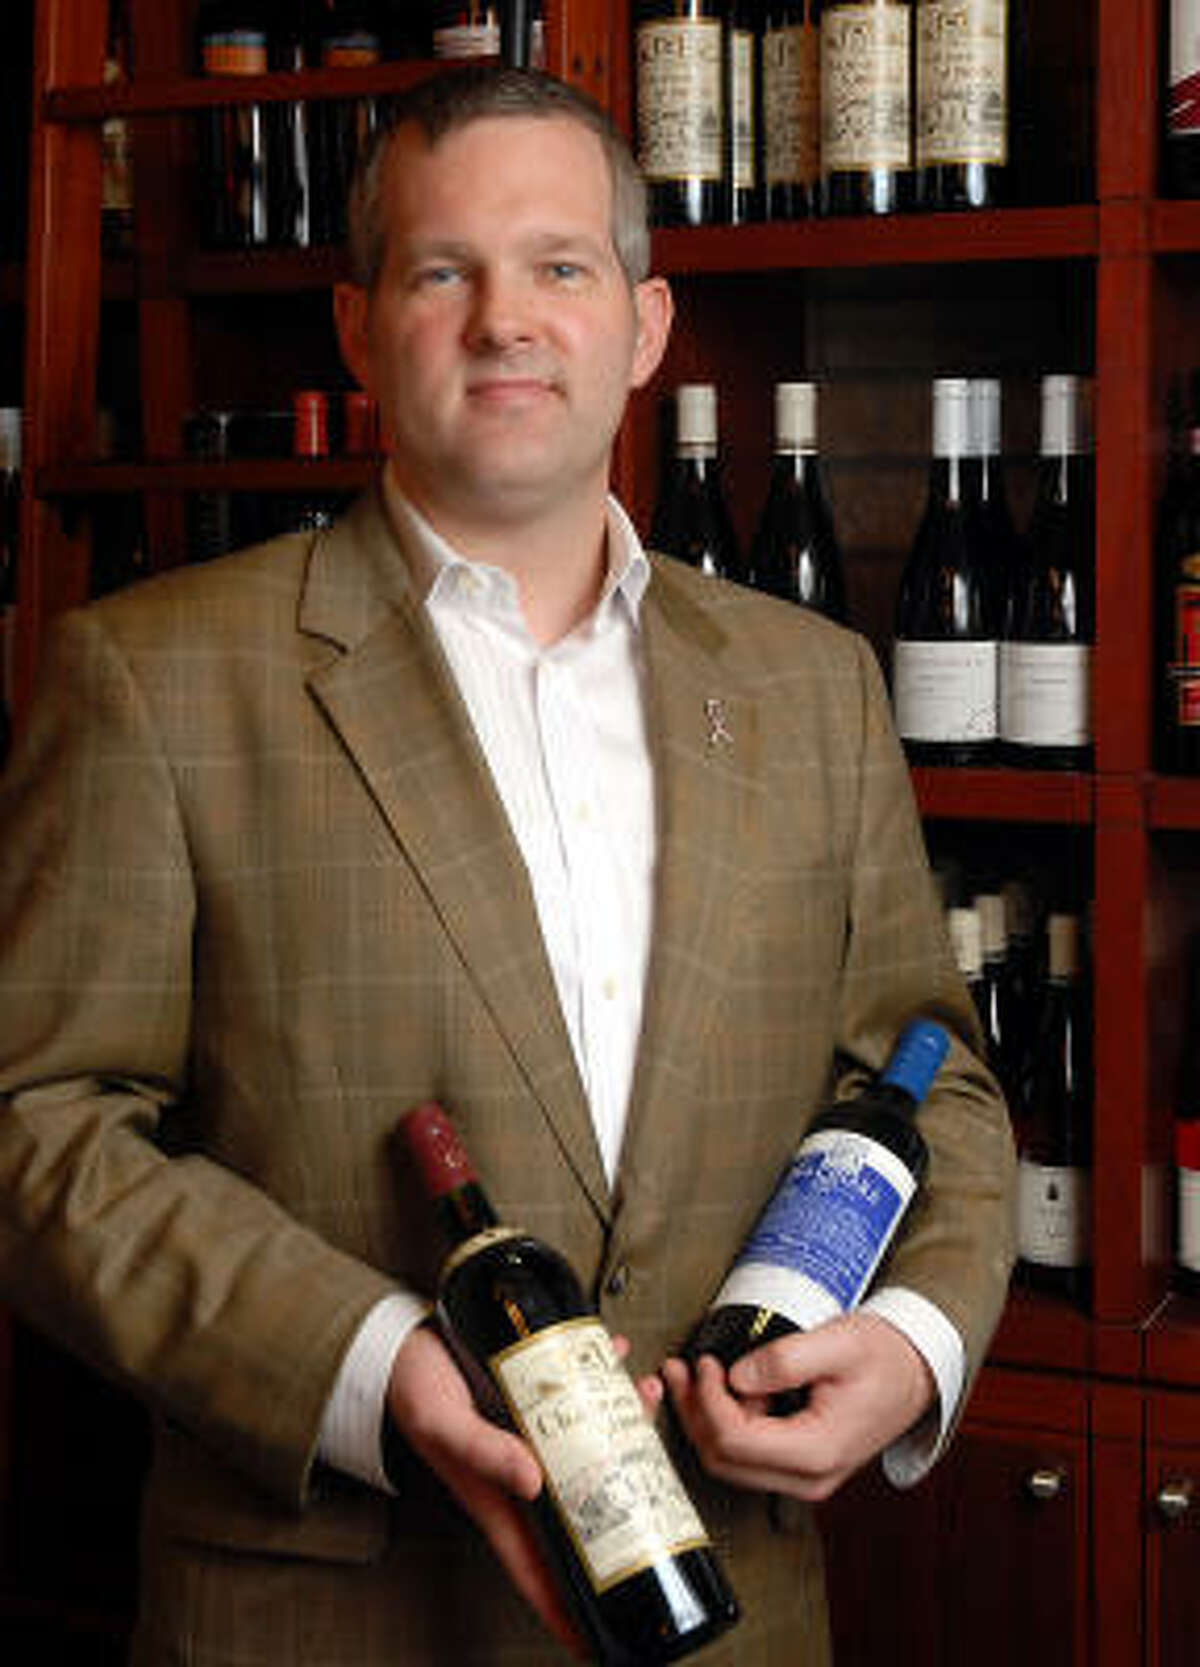 Sommelier Antonio Gianola's noteworthy wine list at Catalan routinely features between 50 and 70 offerings from importer Neal Rosenthal, who favors traditional terroir-driven bottlings.